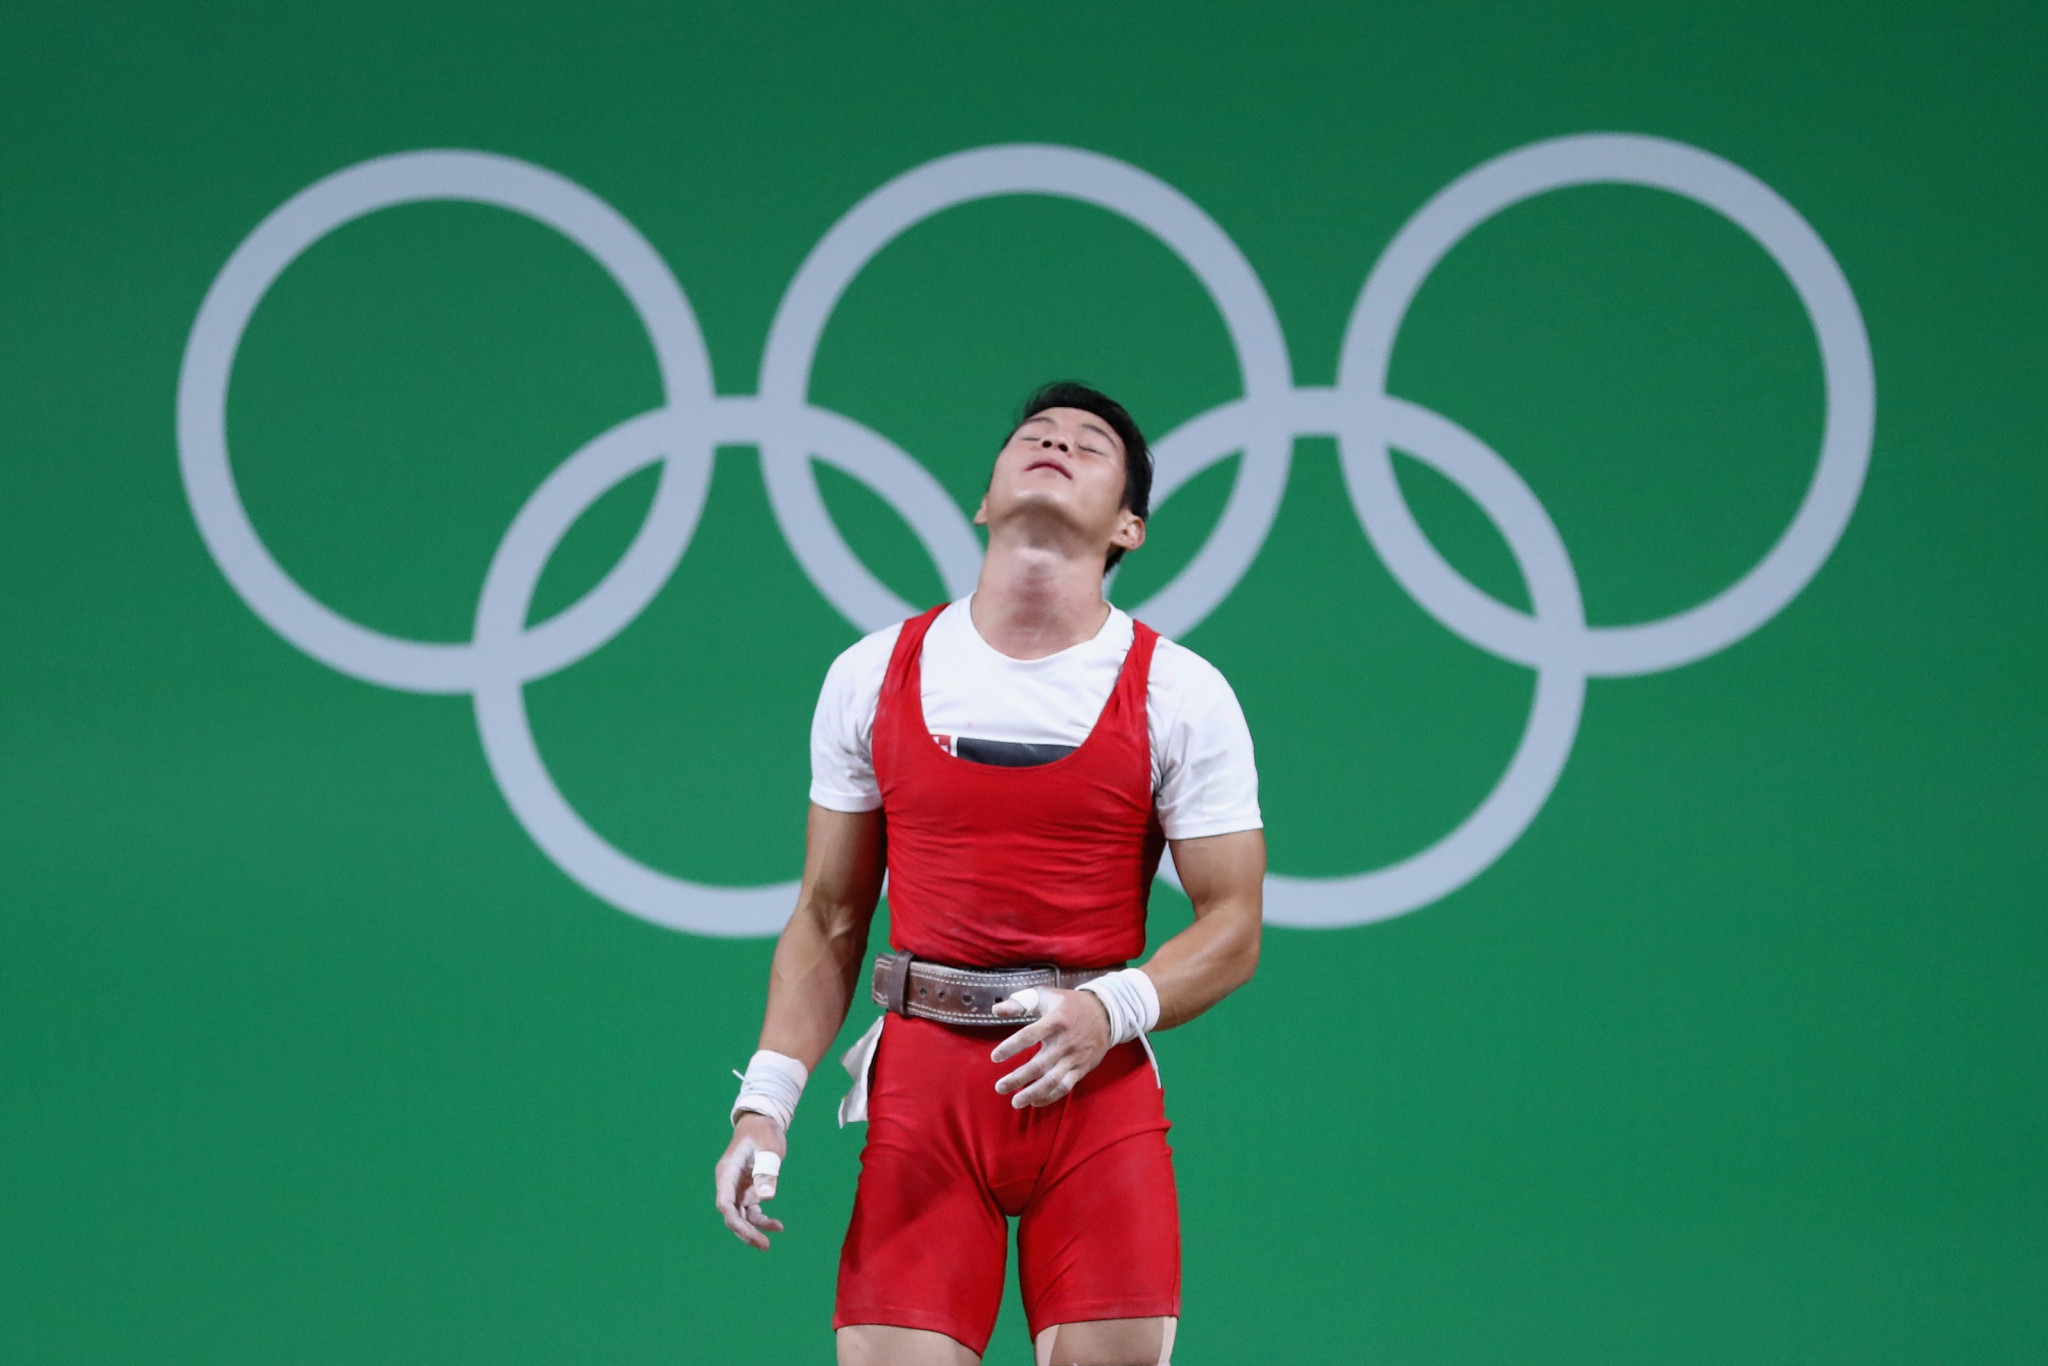 If Vietnam is banned from competing in weightlifting at Tokyo 2020 it would be a blow for  Kim Thuan Thach, a medal contender who has not tested positive ©Getty Images